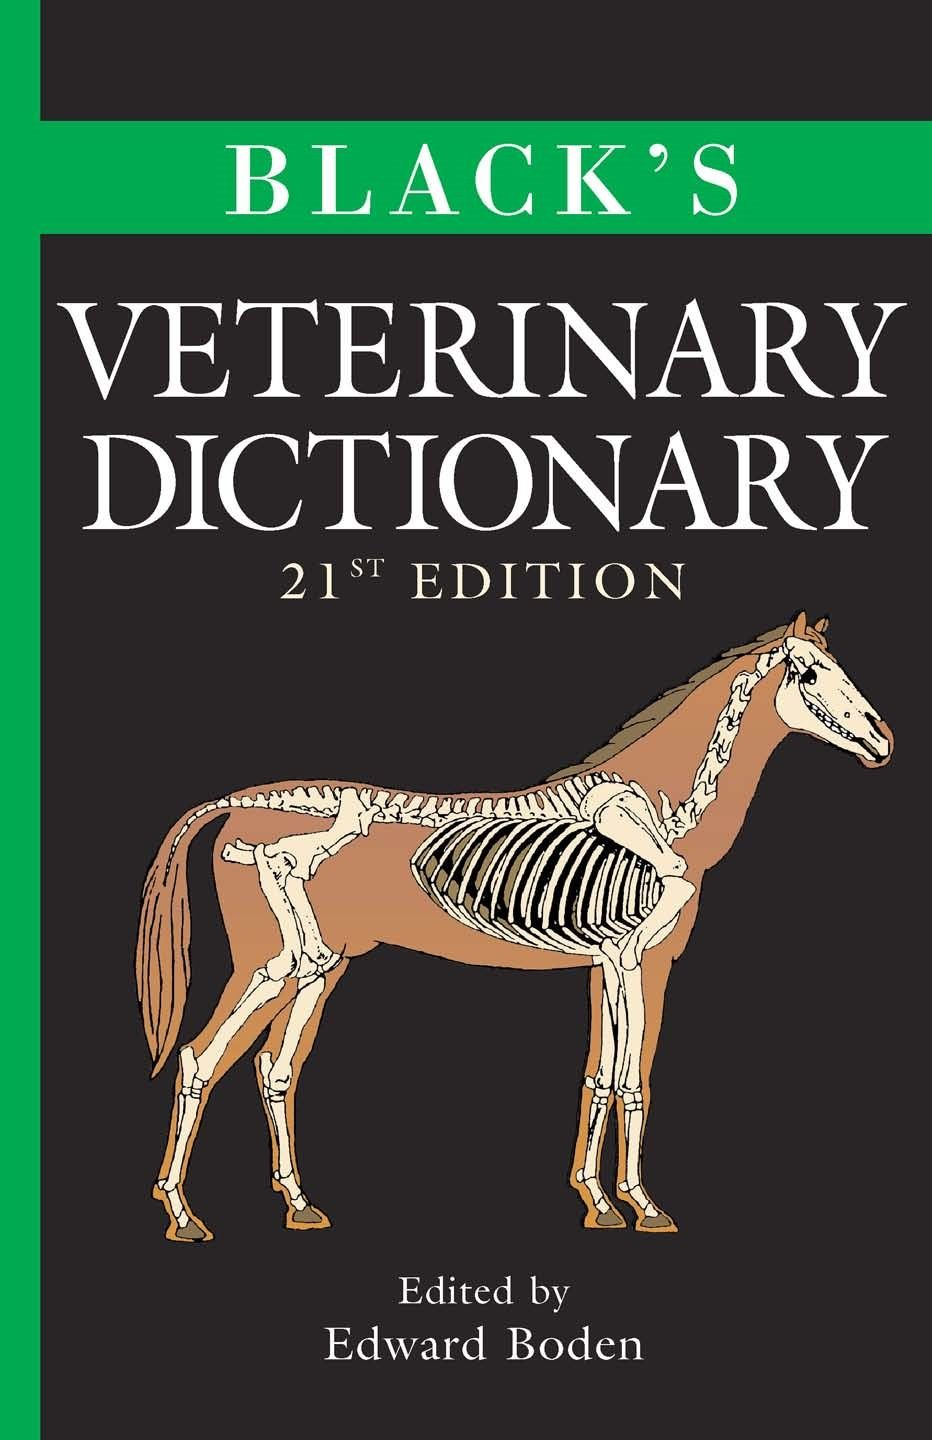 Black's Veterinary Dictionary 21st Edition PDF Download